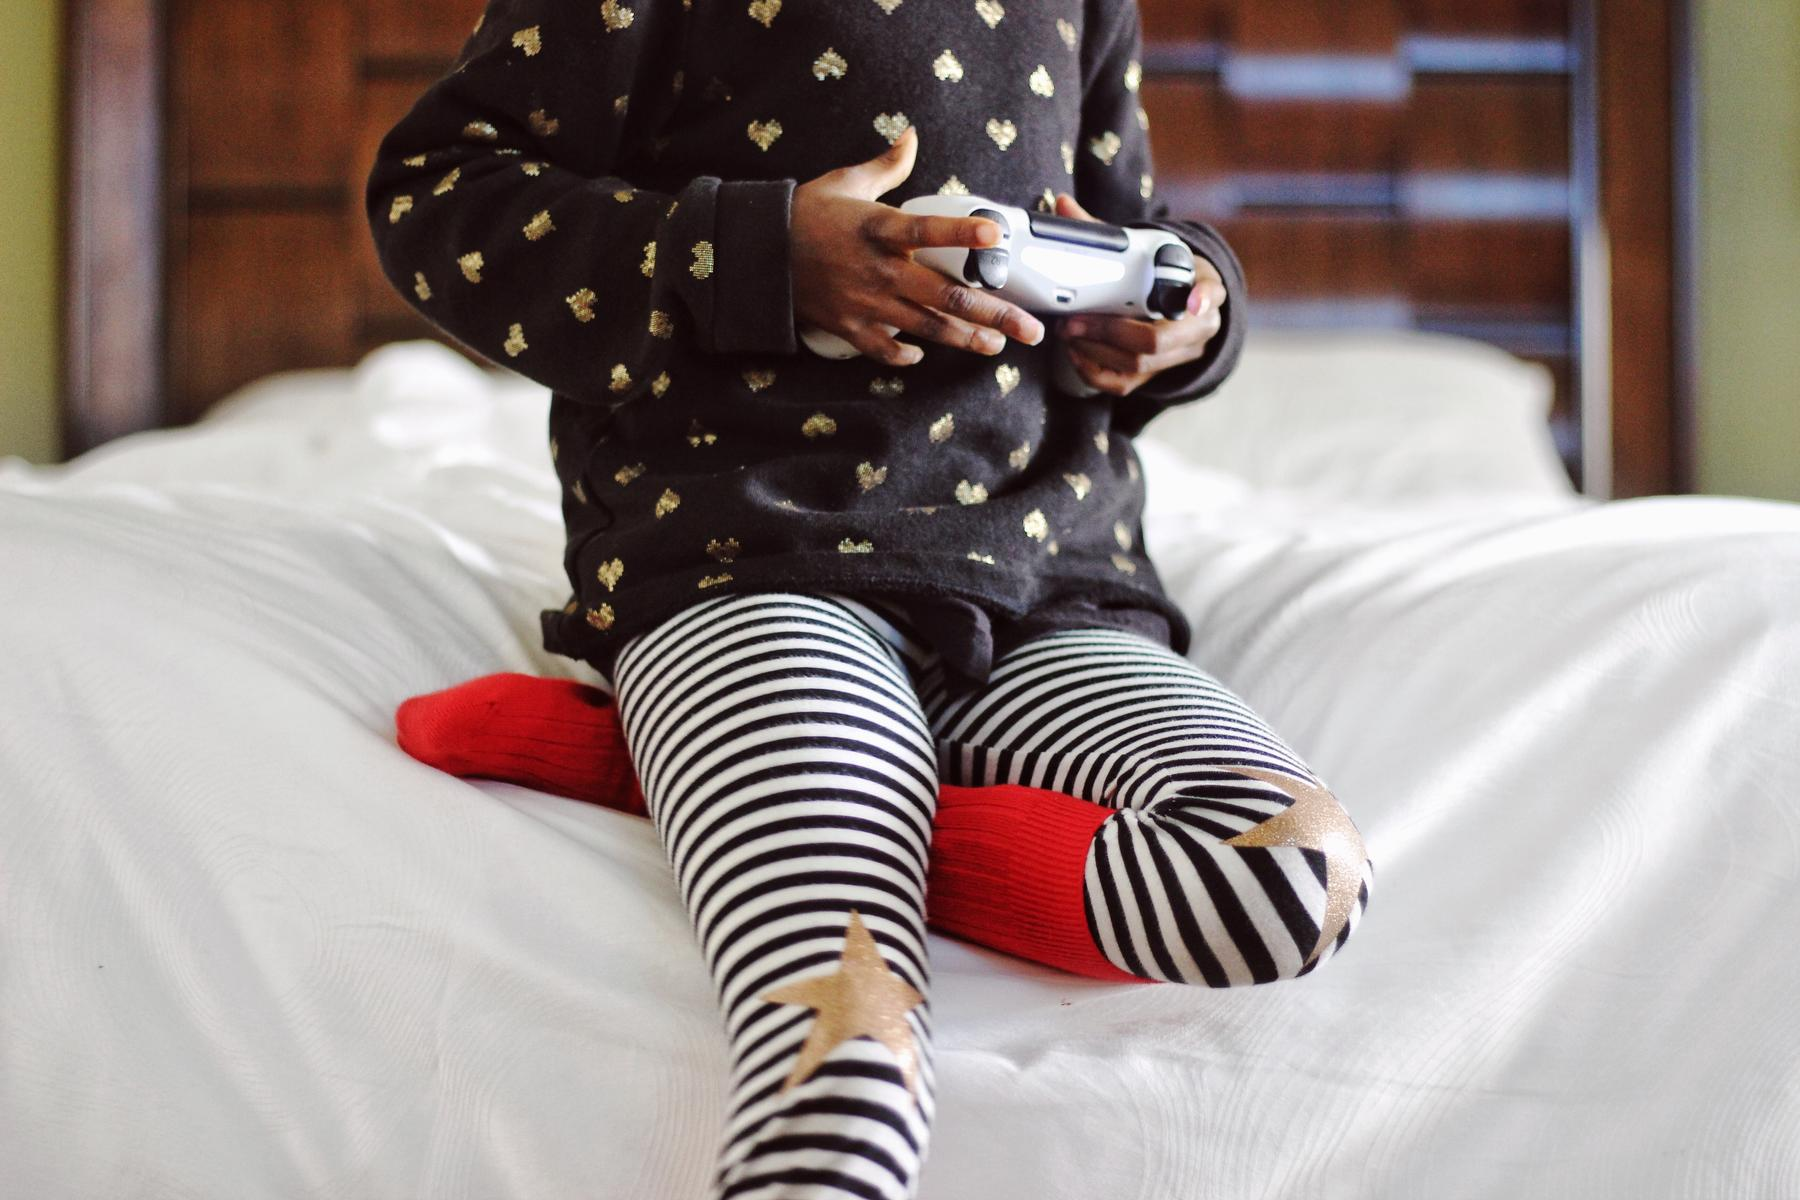 Young Girl Playing Video Game Holding Controller